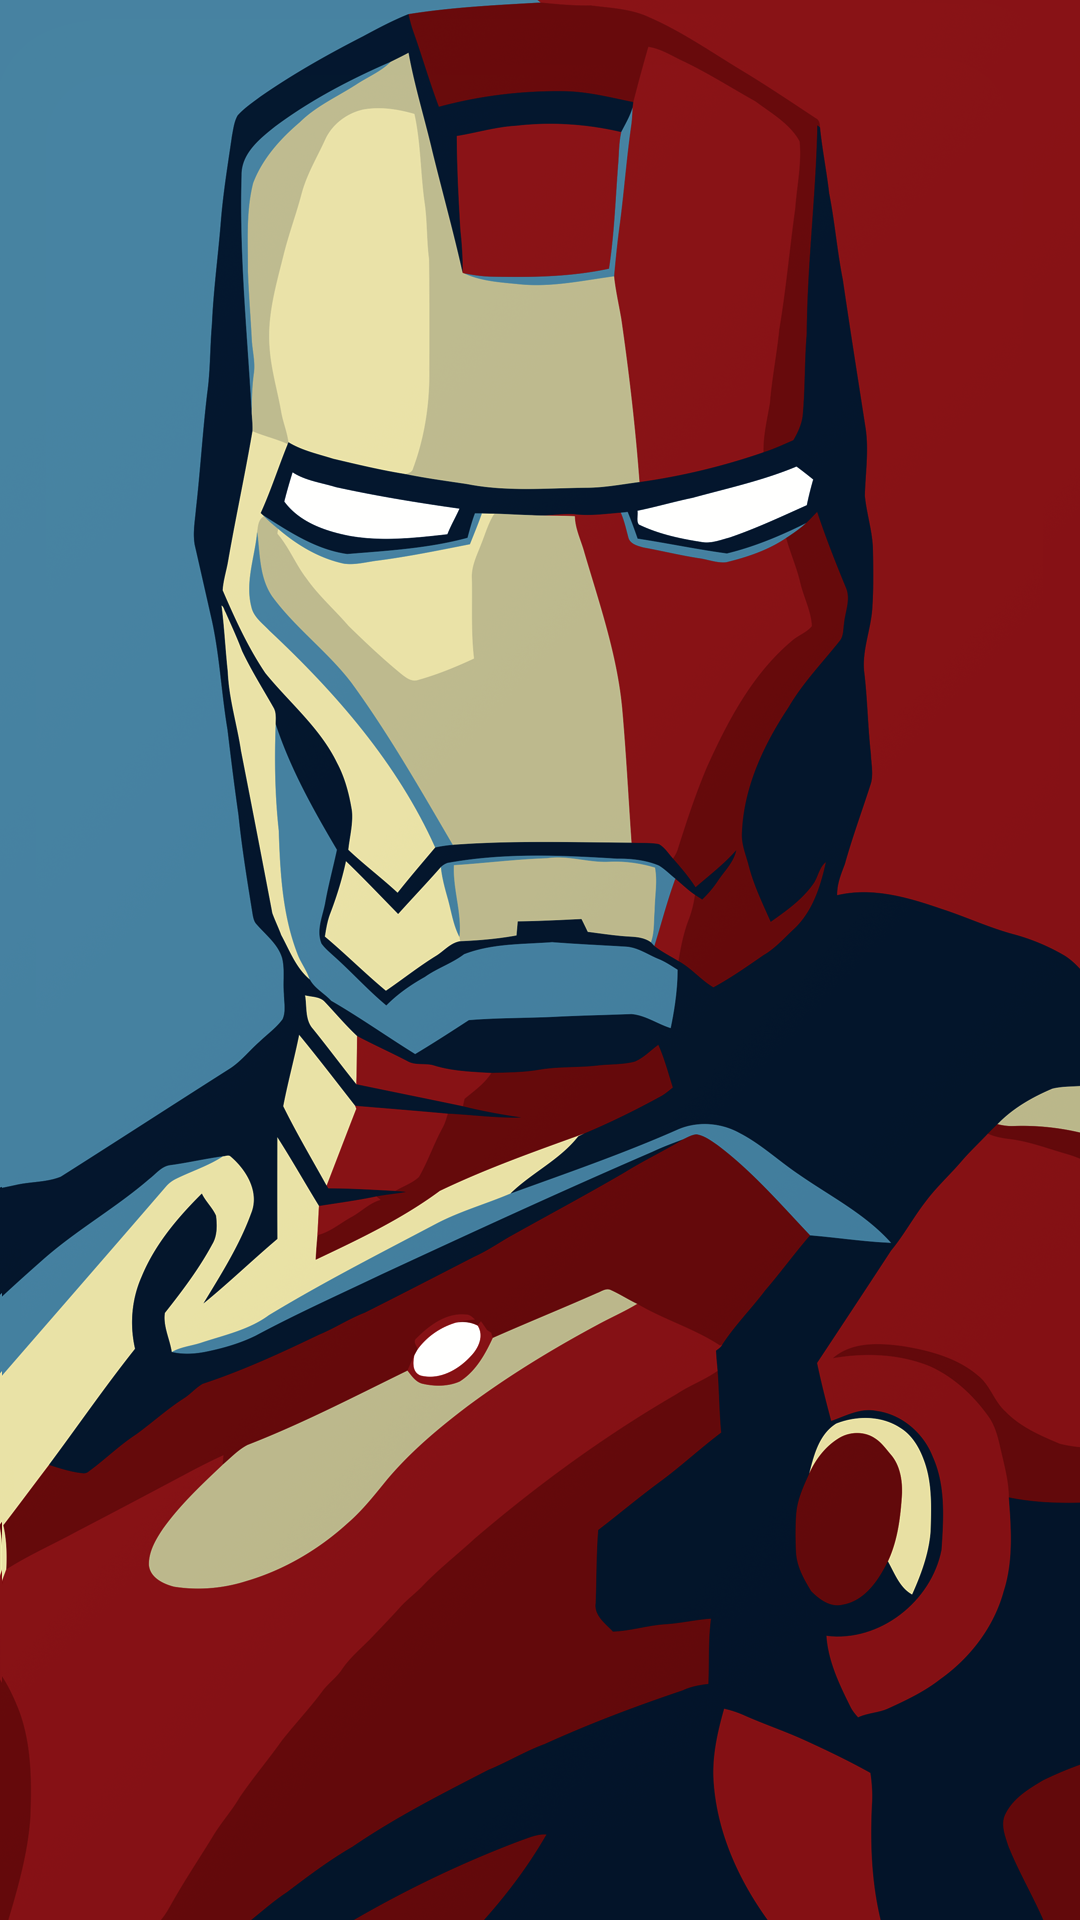 Ultra Hd Iron Man Wallpaper For Your Mobile Phone 0142